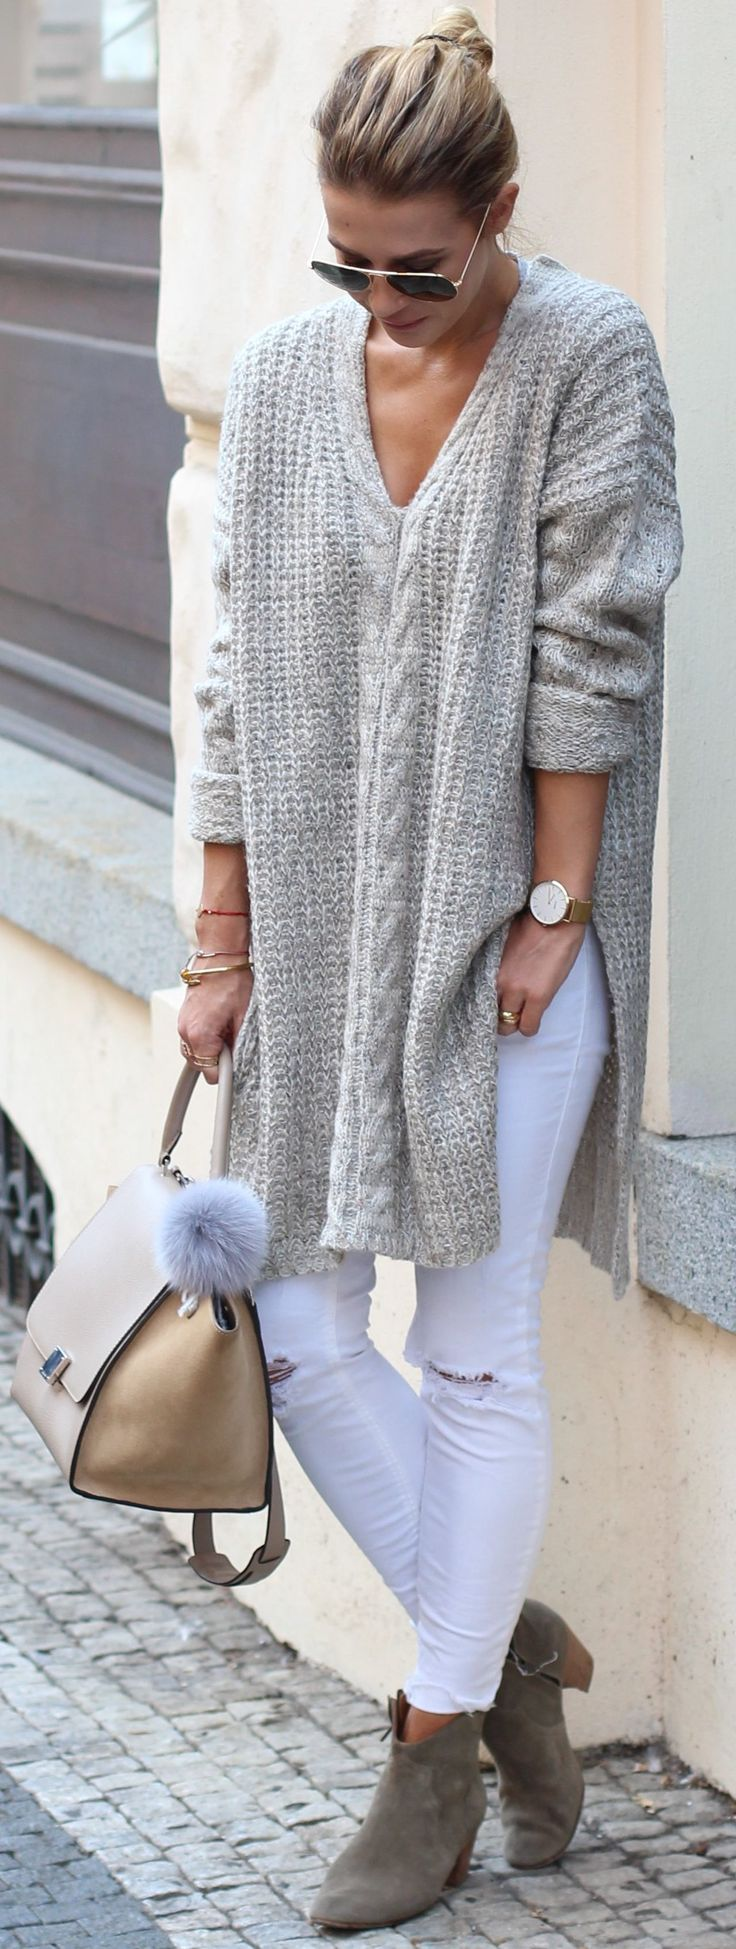 Isabel Marant Booties Fall Streetstyle Inspo by Czech Chicks #bootie